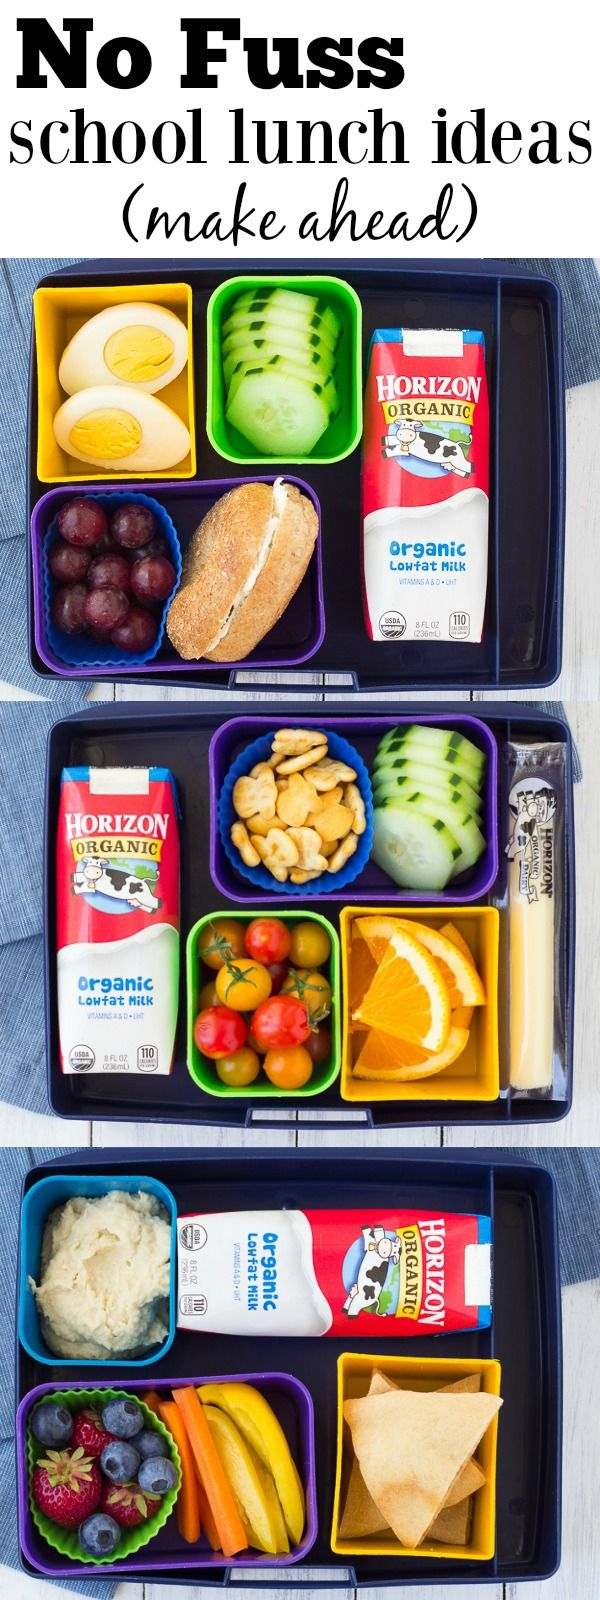 Fast and healthy school lunch ideas and tips! These make ahead lunch ideas save you time and effort! | www.kristineskitchenblog.com #schoollunchideasforkids